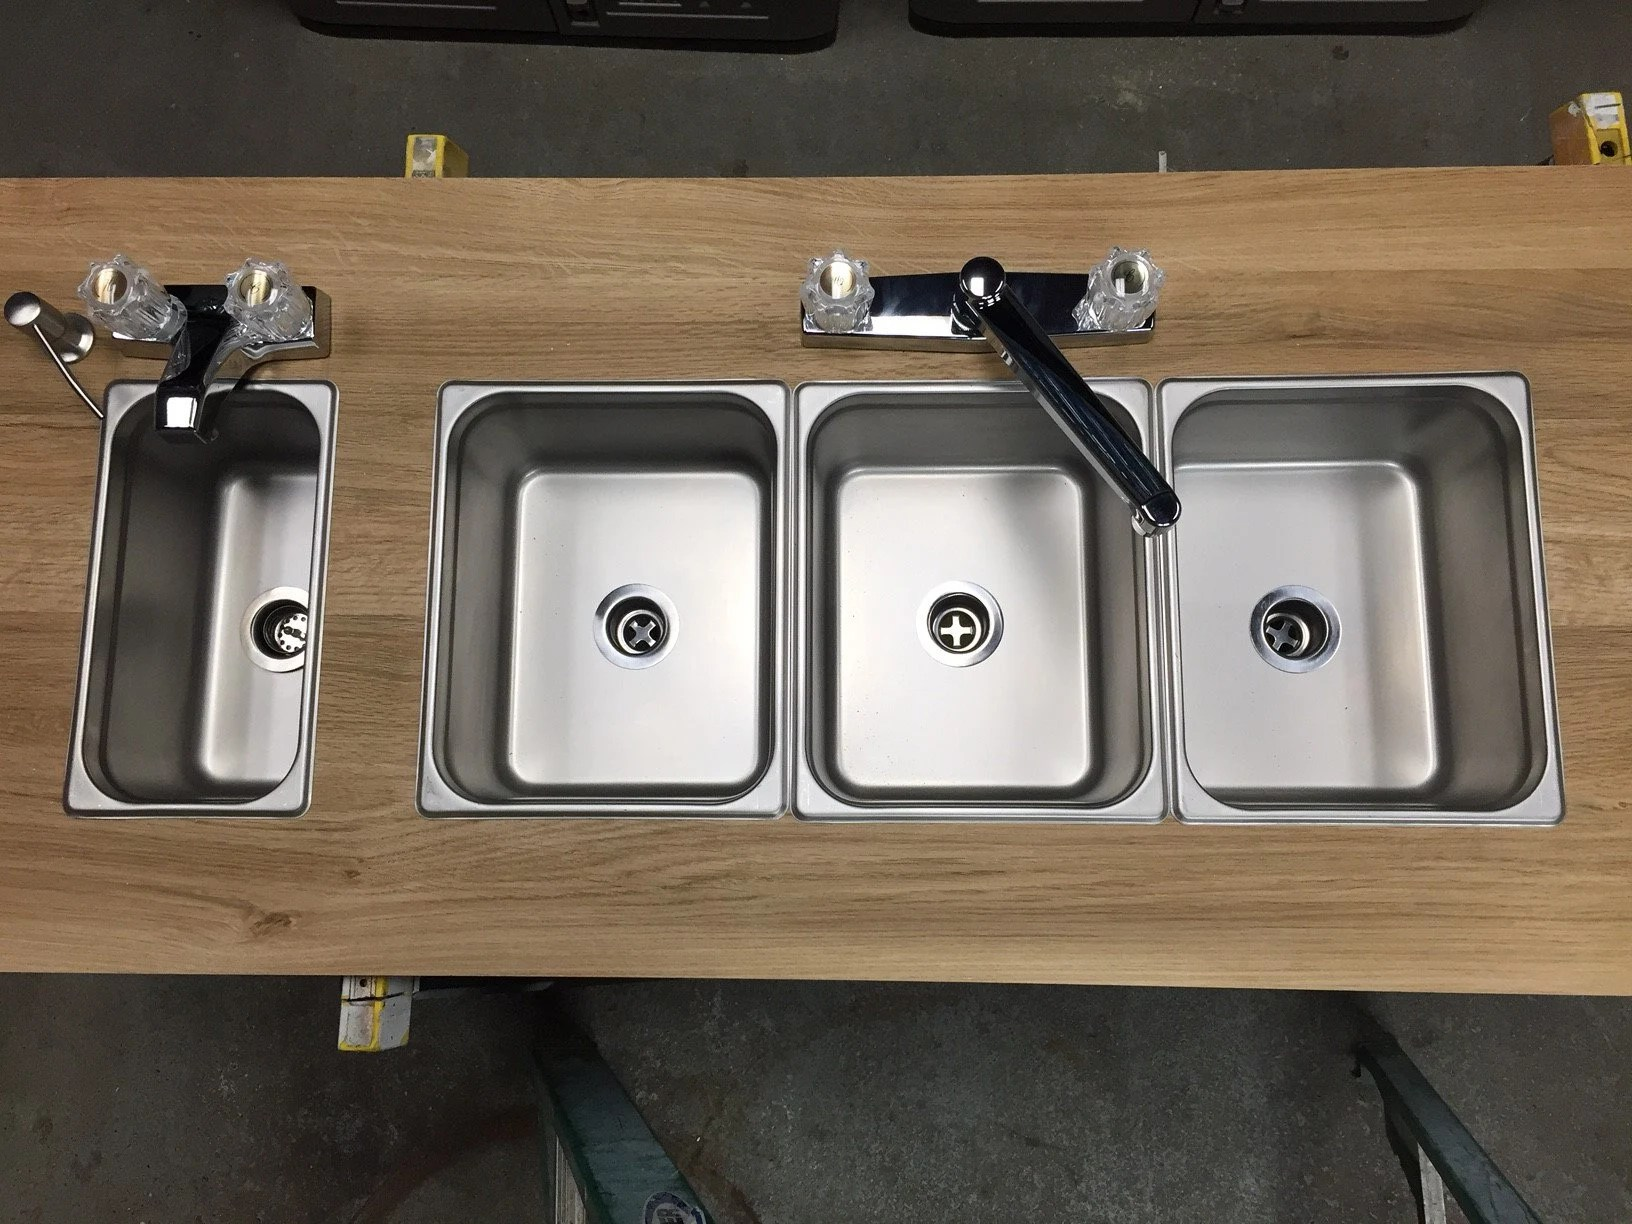 portable sink by pratts direct 3 4 bay compartment diy for outdoor food truck trailer food vendor with small sink hand wash